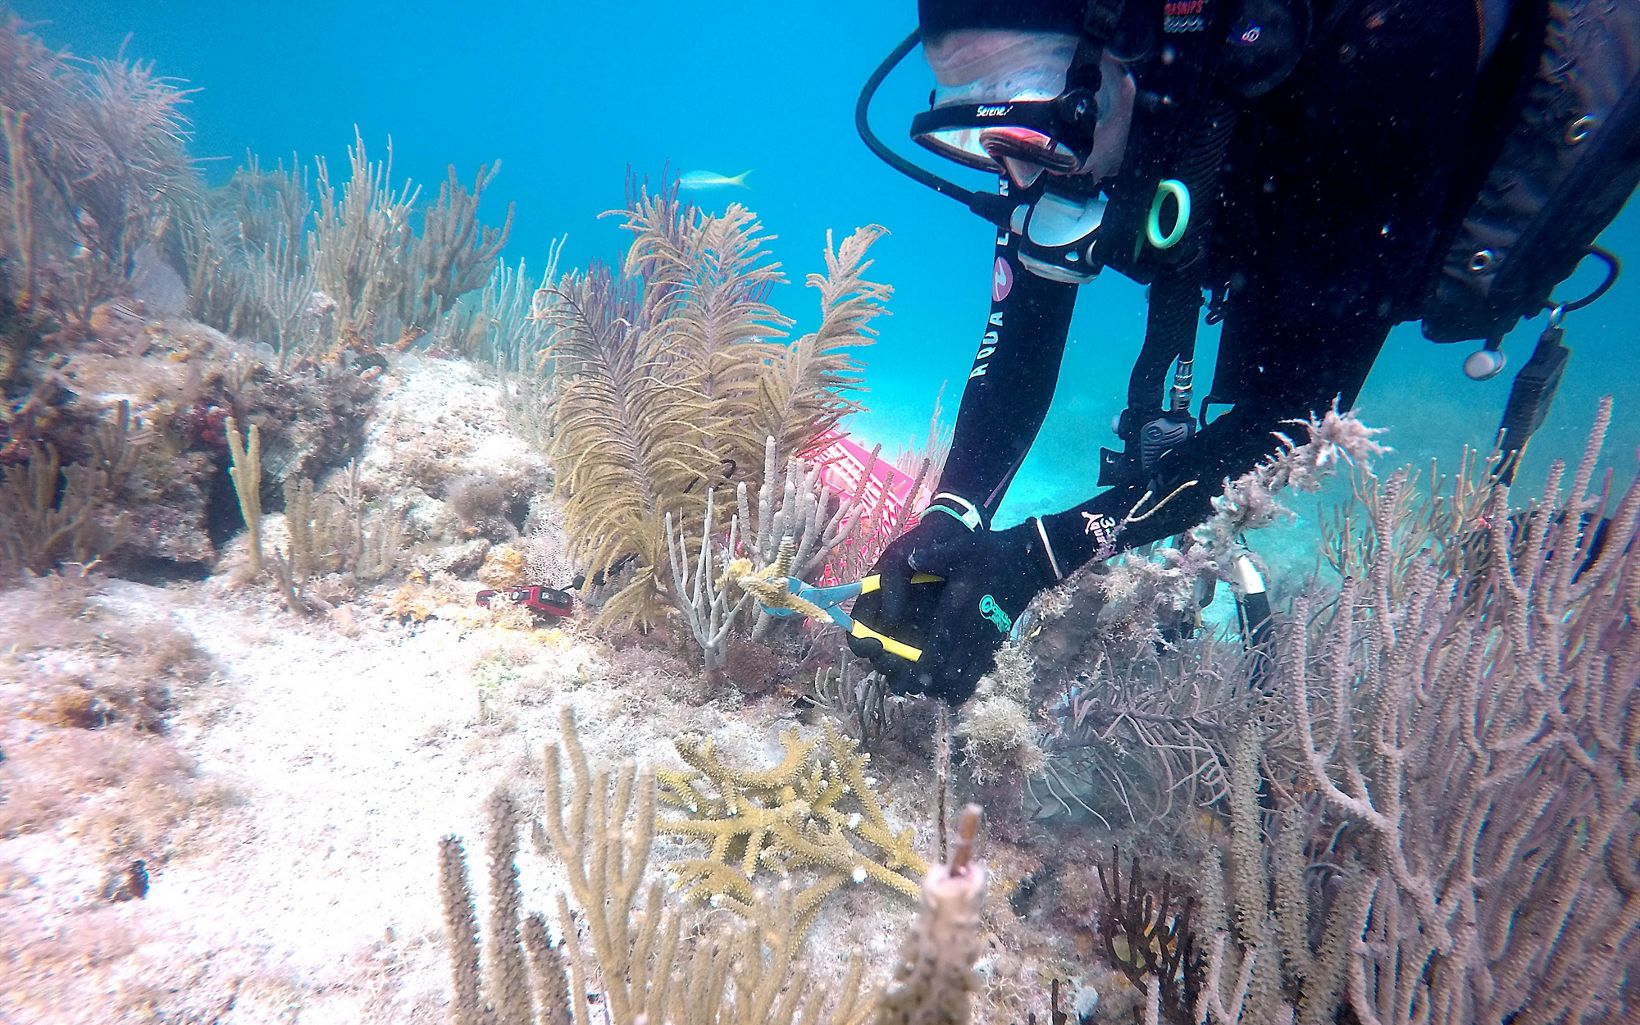 Coral planting in Dry Tortugas National Park, Florida